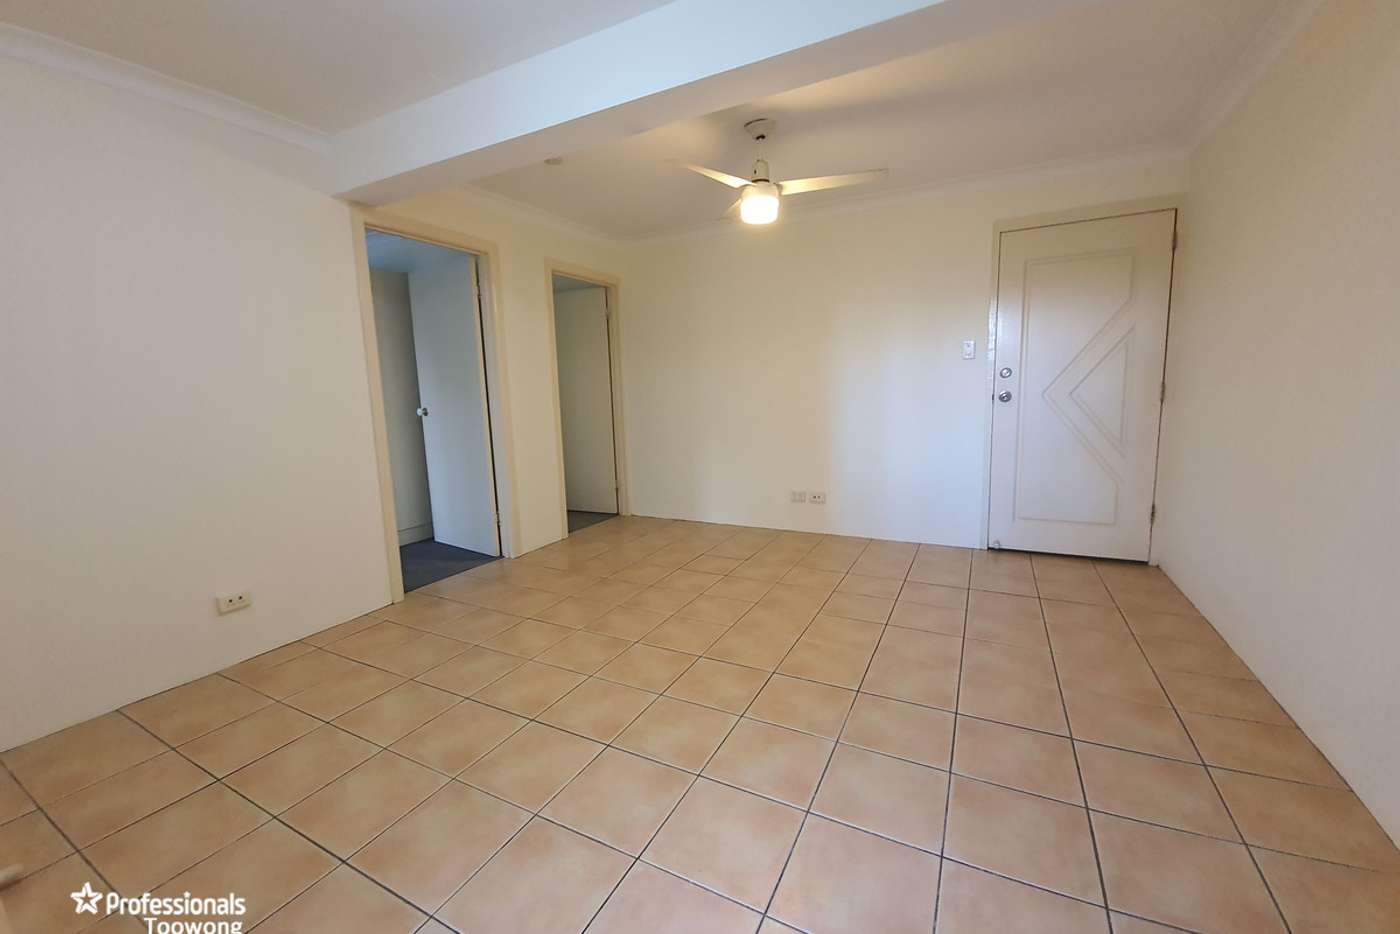 Main view of Homely unit listing, 11/75 Sir Fred Schonell Drive, St Lucia QLD 4067